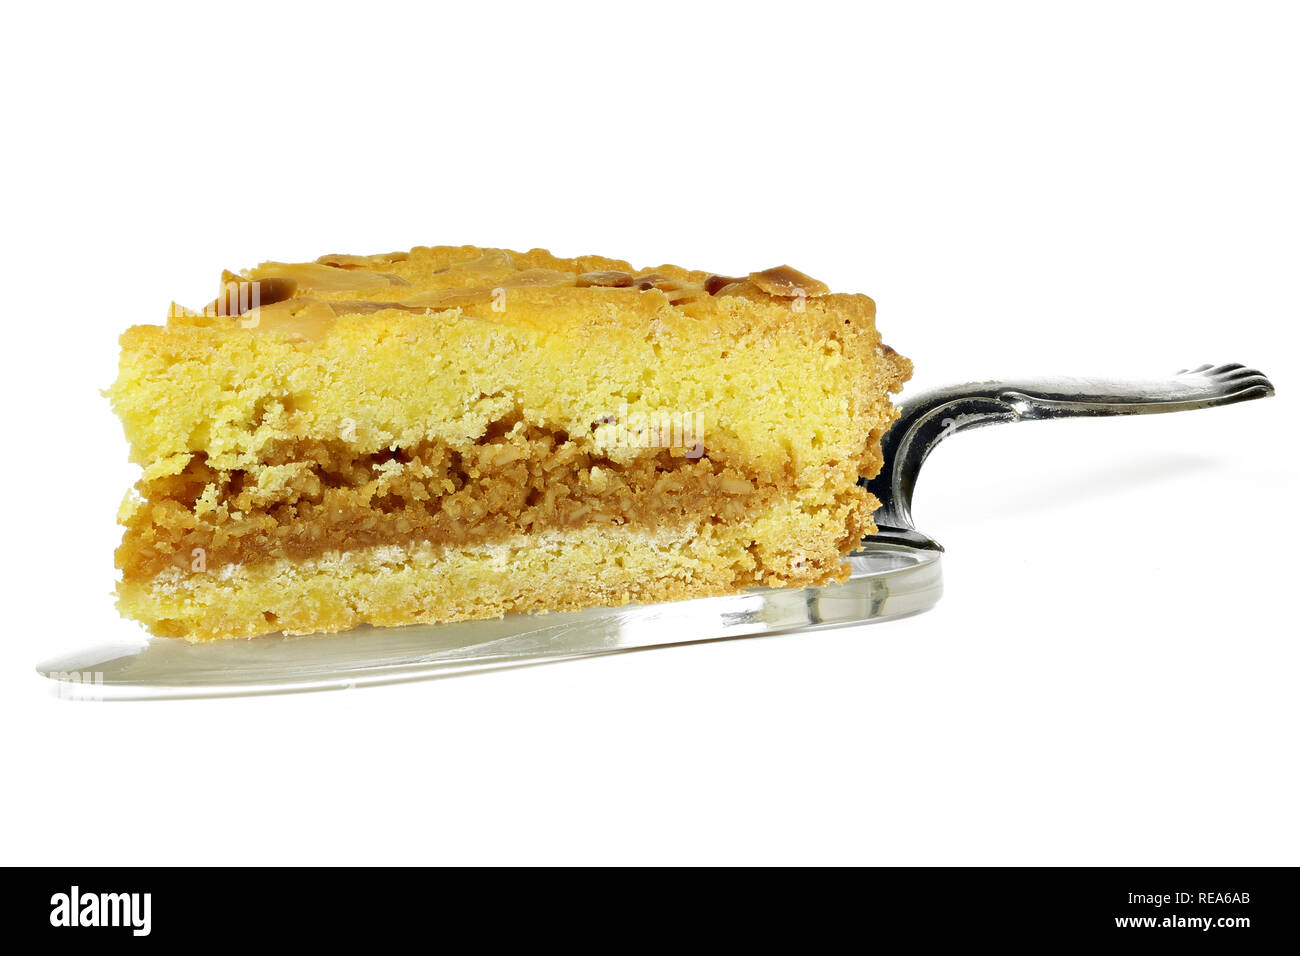 cake lifter with wedge of filled cake from the Dutch island of Texel called Razende Bol isolated on white background - Stock Image